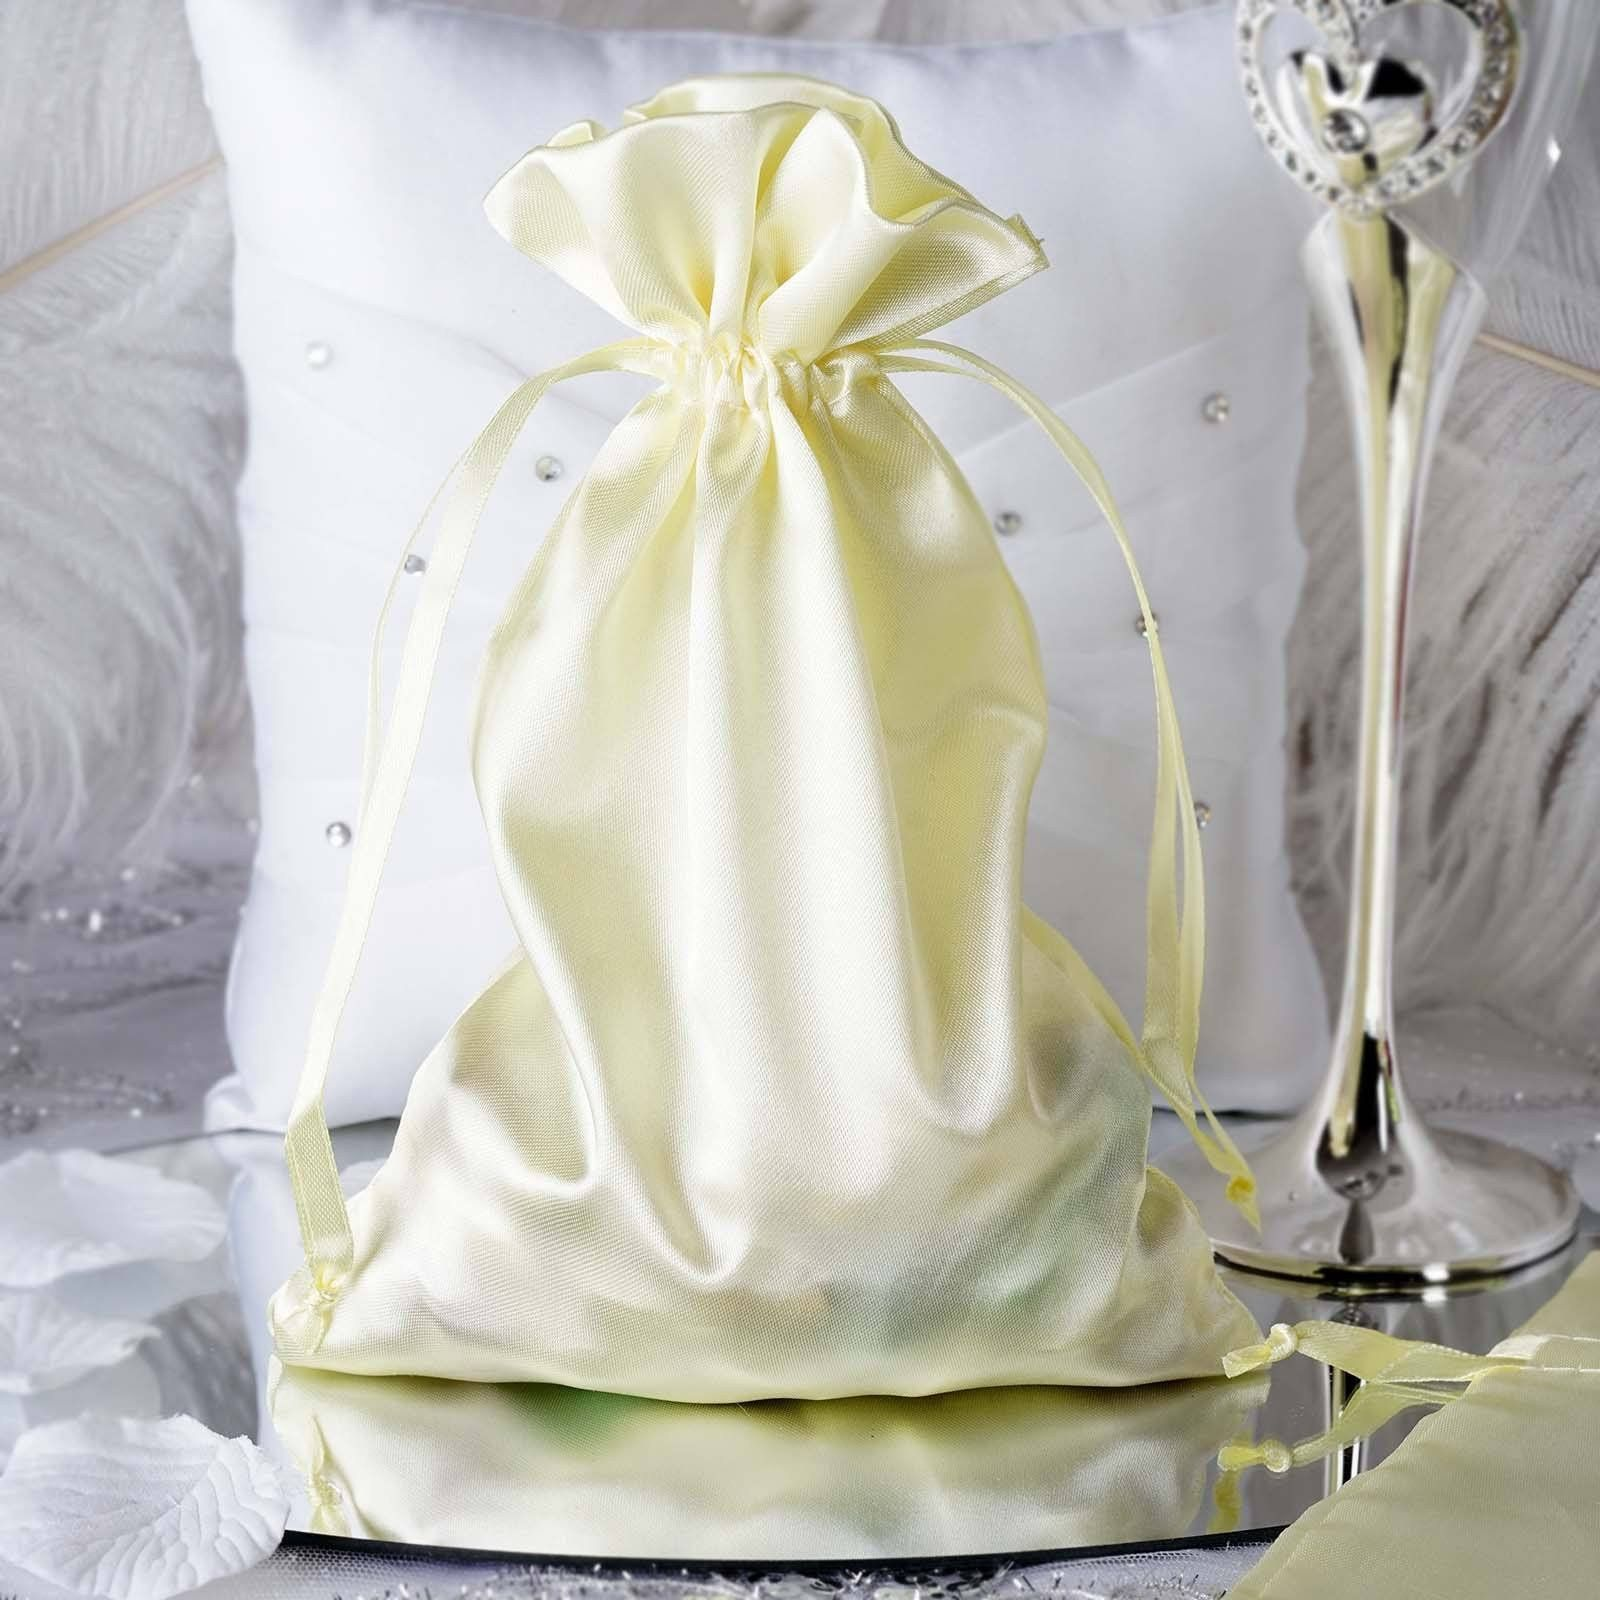 Https Www Efavormart Com Products Pack Of 12 6x9 Yellow Satin Party Favor Bags Drawstring Pouch Gift Bags Variant 2 Satin Bags Fashion Gifts Drawstring Pouch